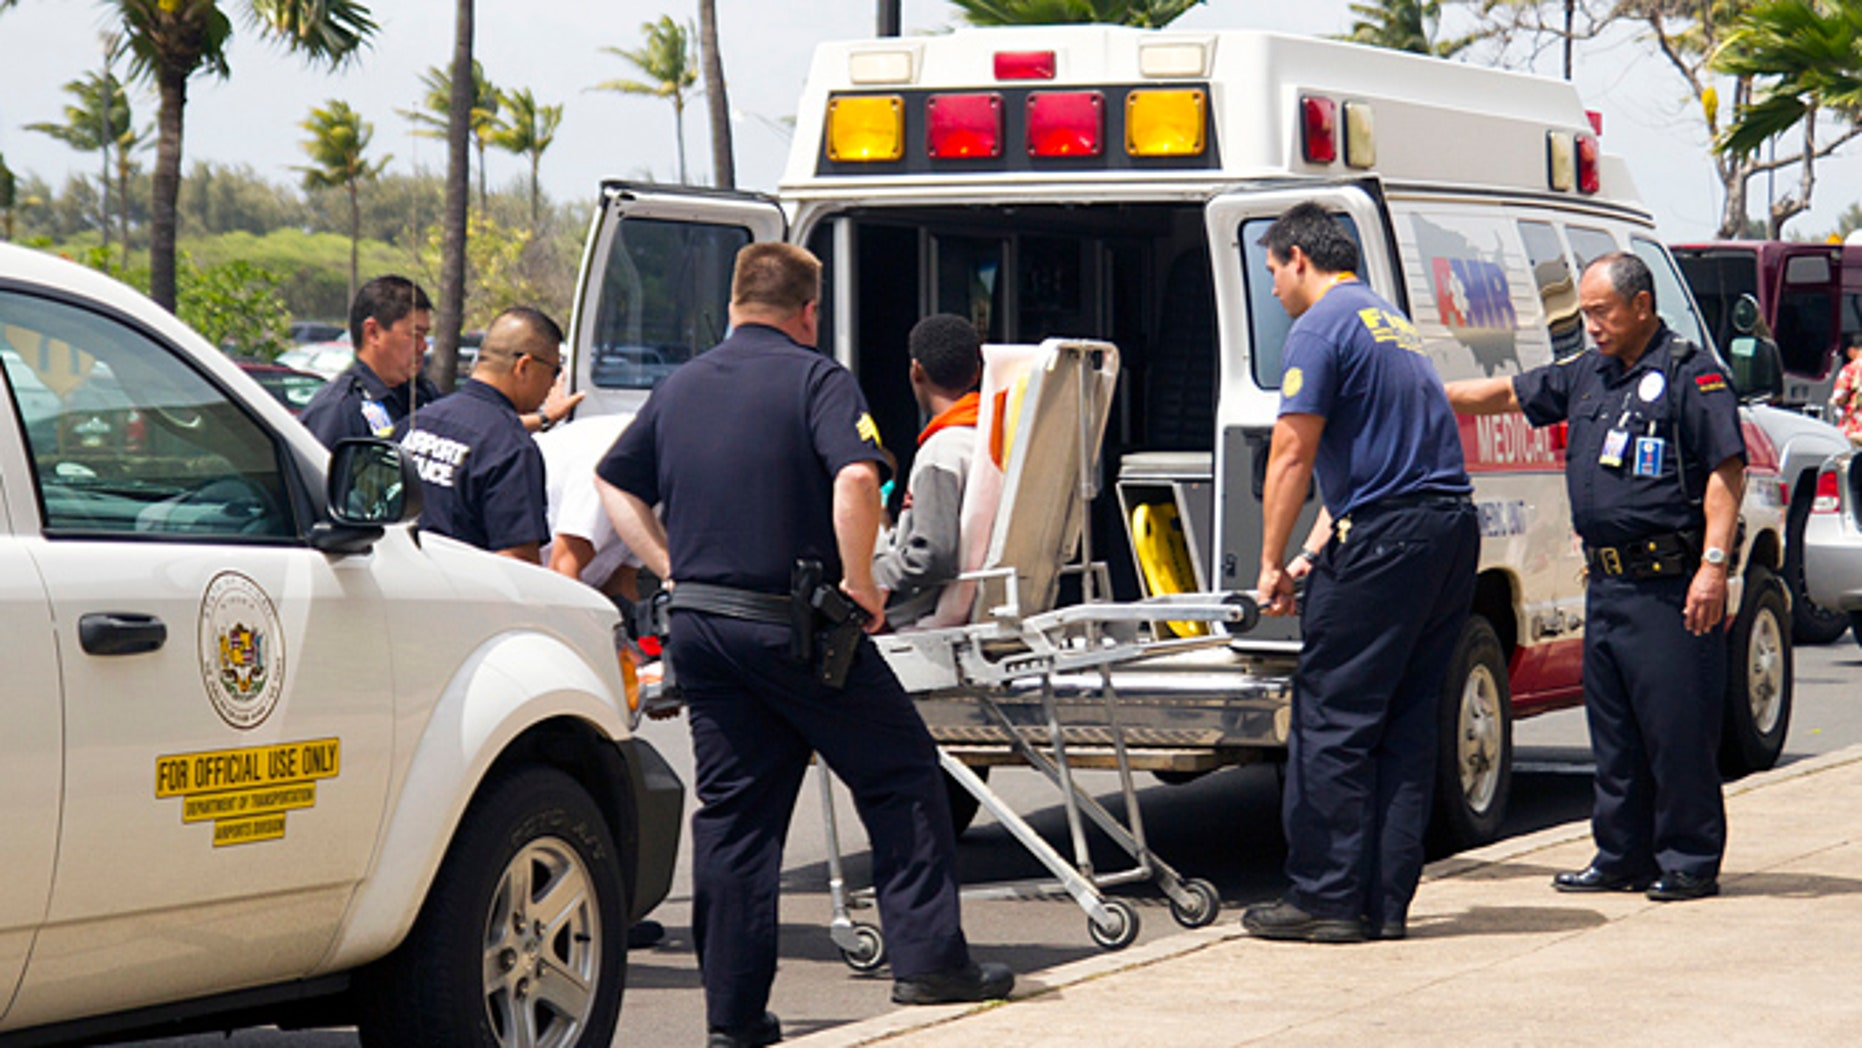 April 20, 2014: In this file photo, a 15-year-old boy, seen sitting on a stretcher center, who stowed away in the wheel well of a flight from San Jose, Calif., to Maui is loaded into an ambulance at Kahului Airport in Kahului, Maui, Hawaii.